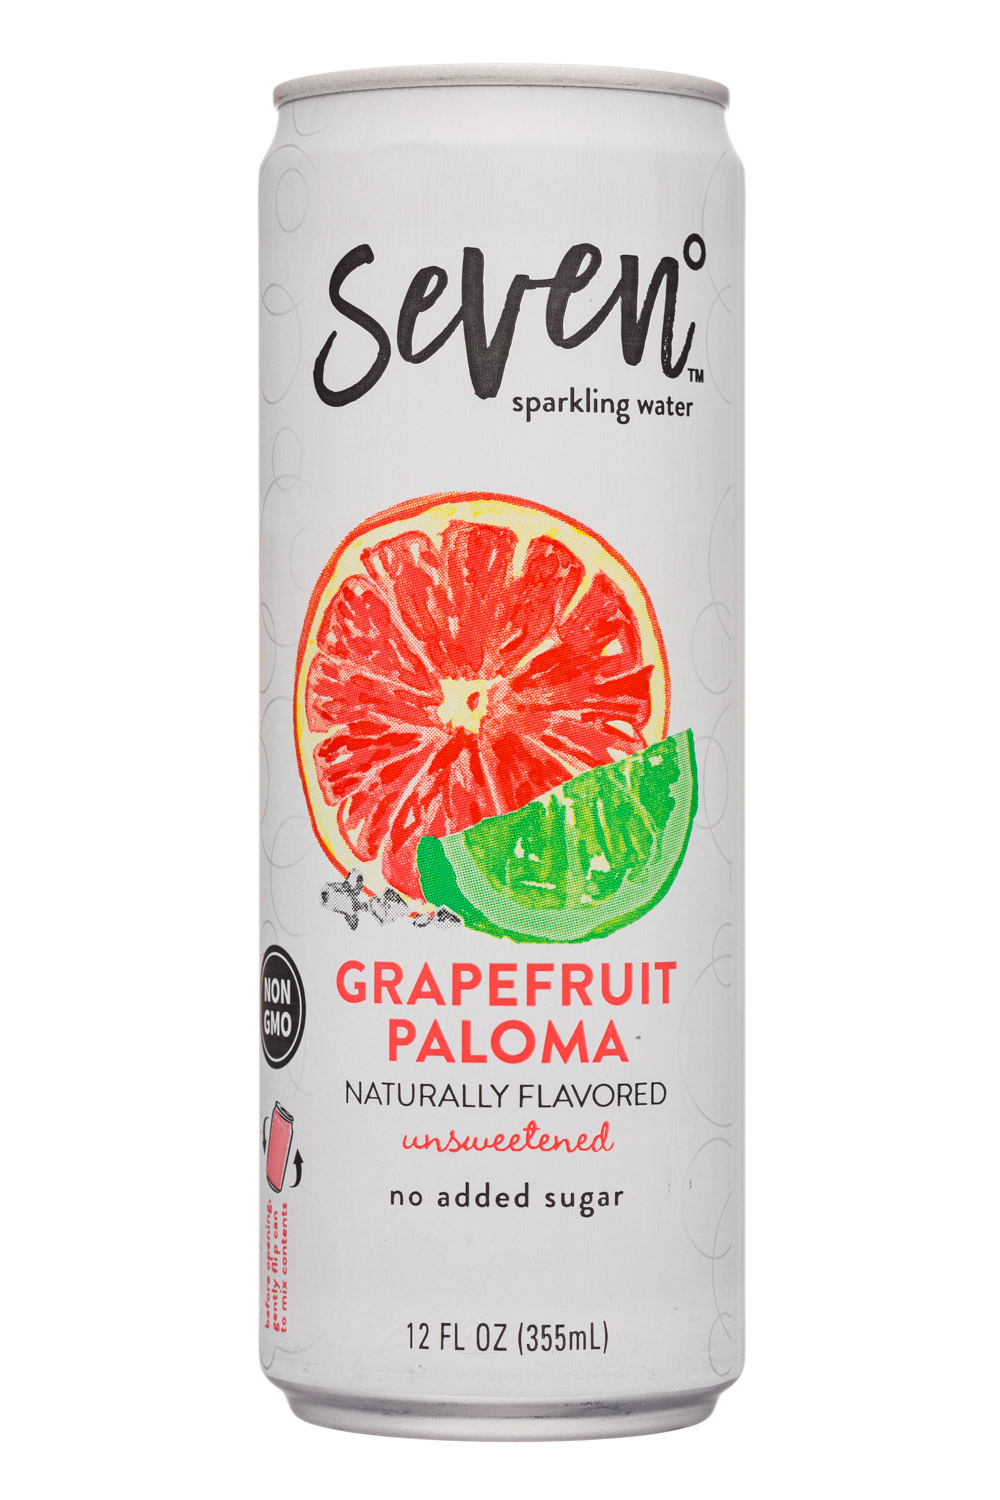 Grapefruit Paloma Sparkling Water